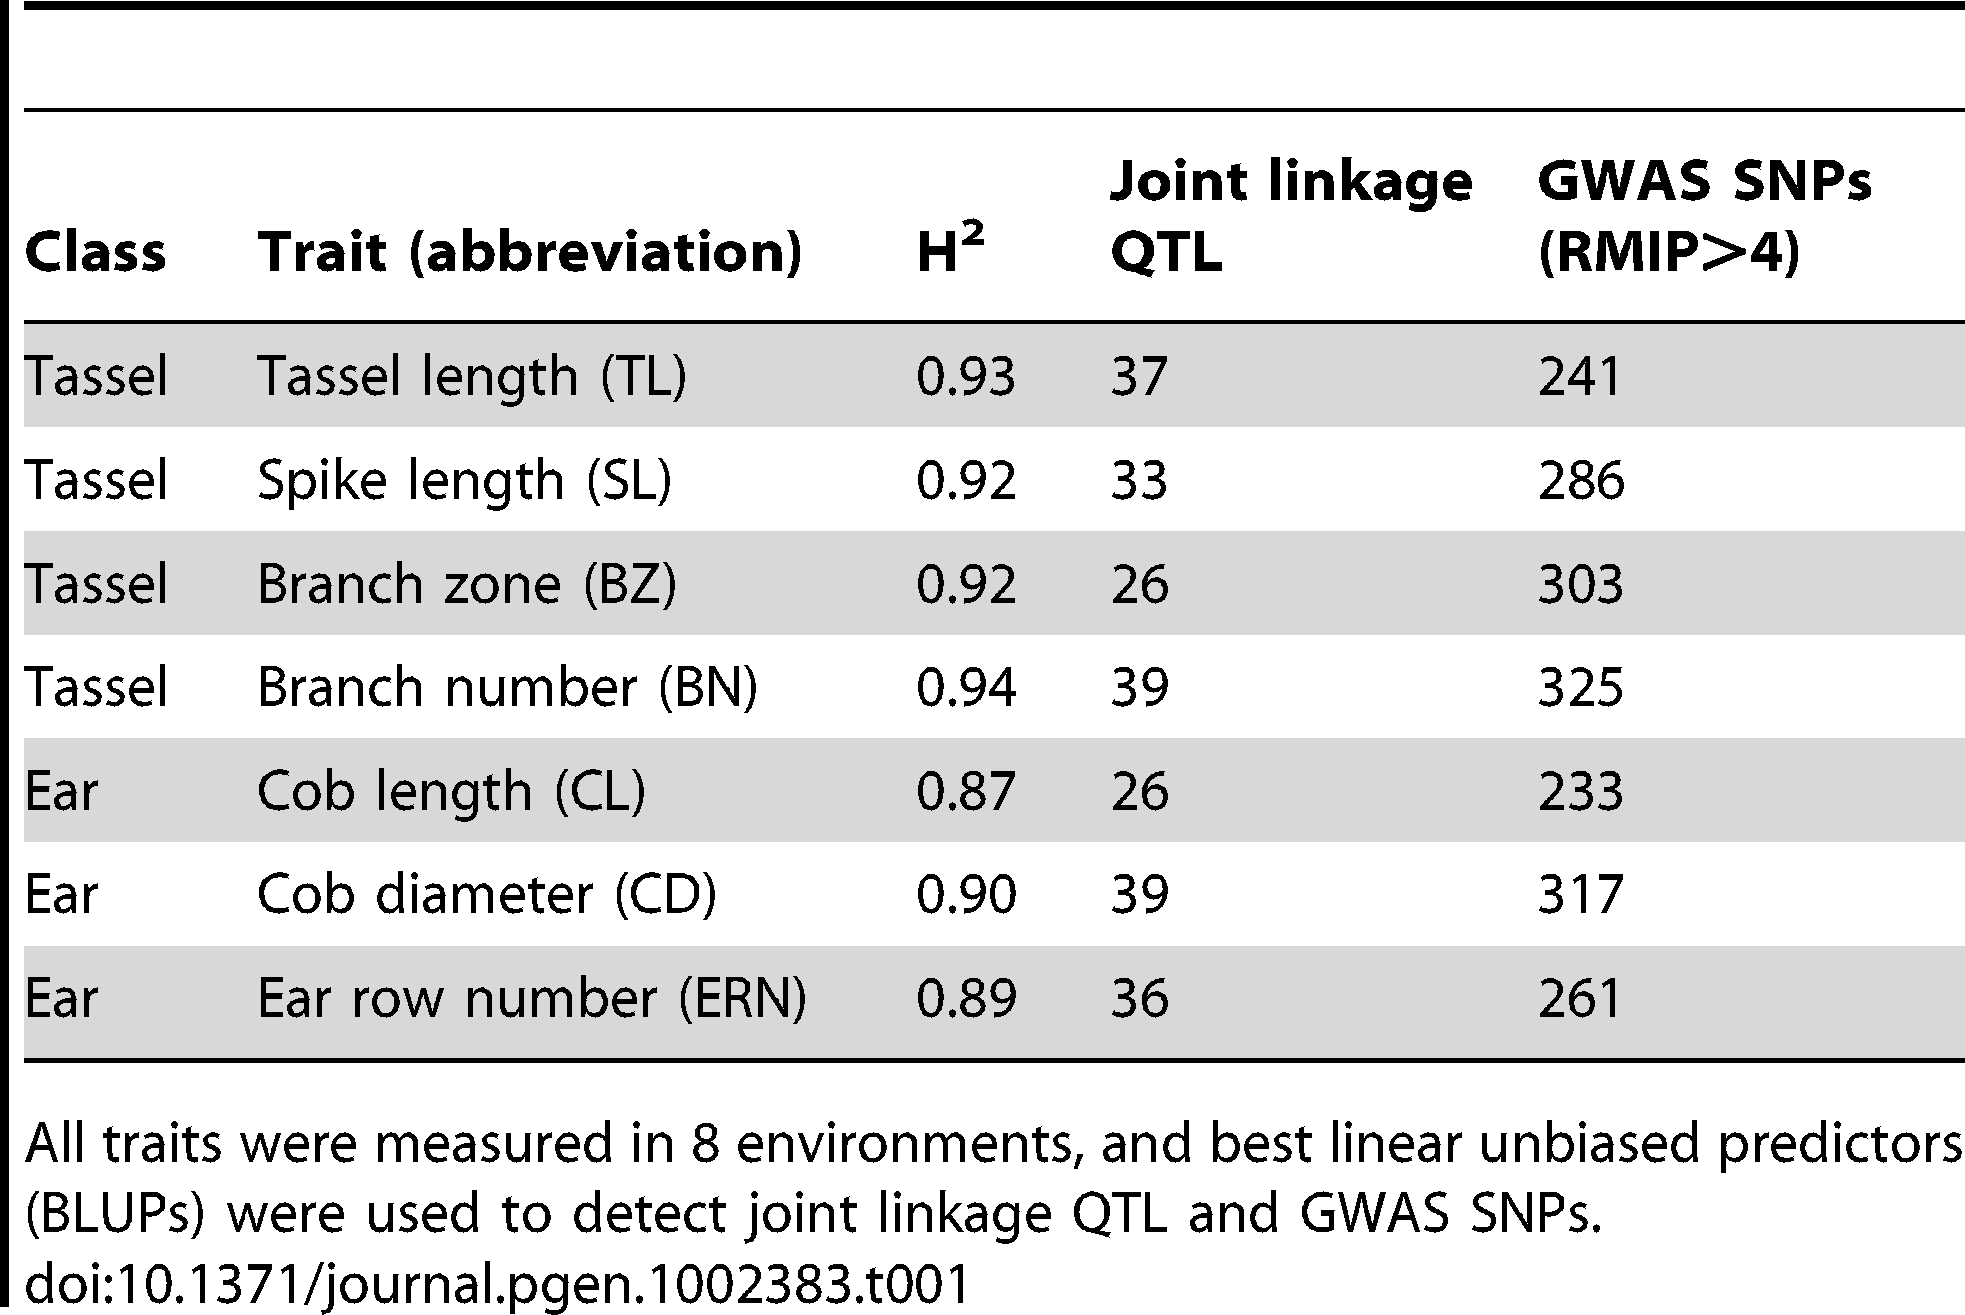 Summary of maize inflorescence phenotypes and QTL results.